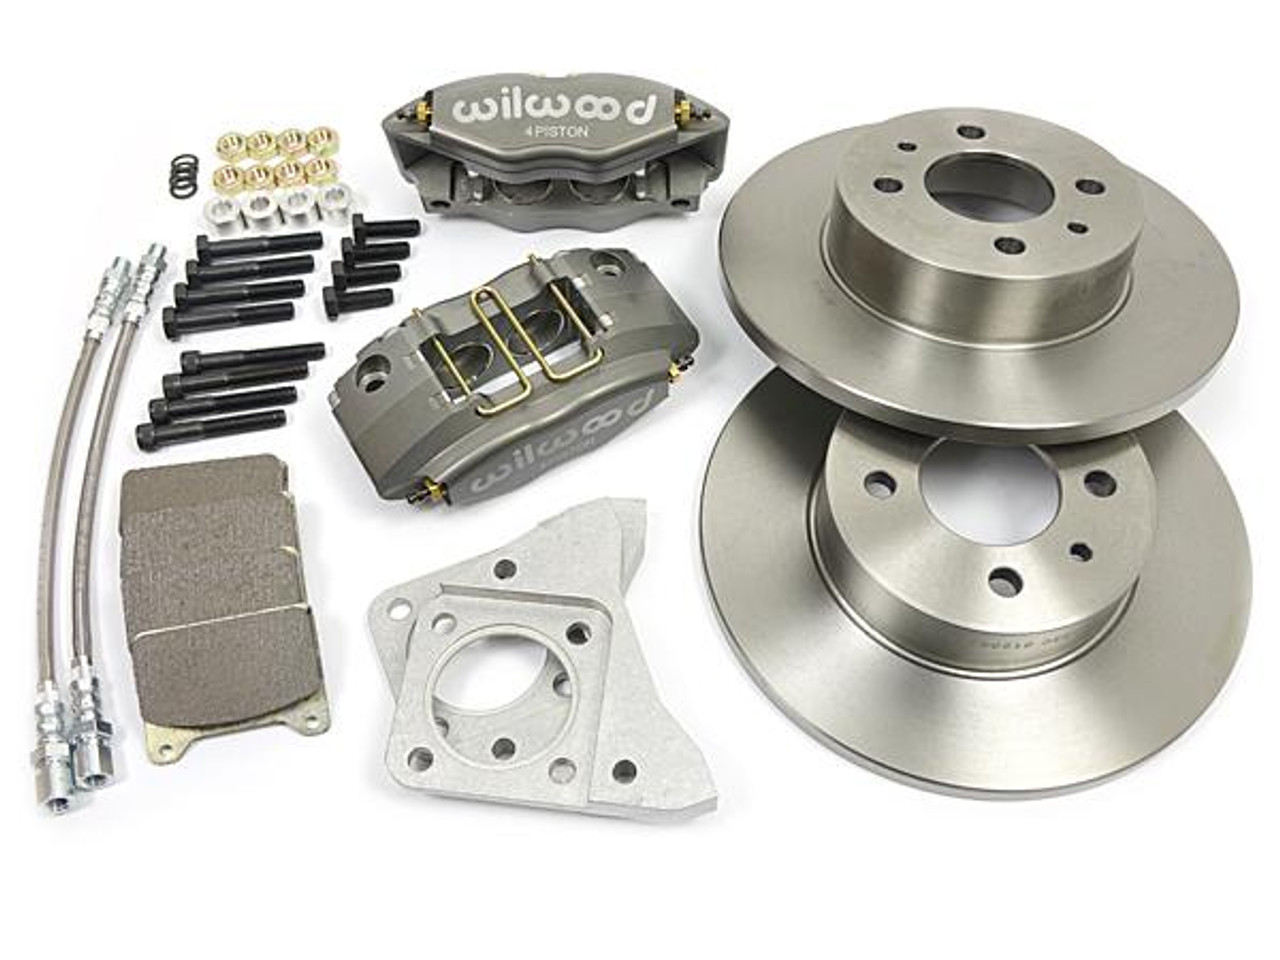 """Wilwood big brake caliper kit with large (10"""") brake rotors FIAT 124 Spider, Sport Coupe, Spider 2000 and Pininfarina - 1966-1985 - Auto Ricambi"""